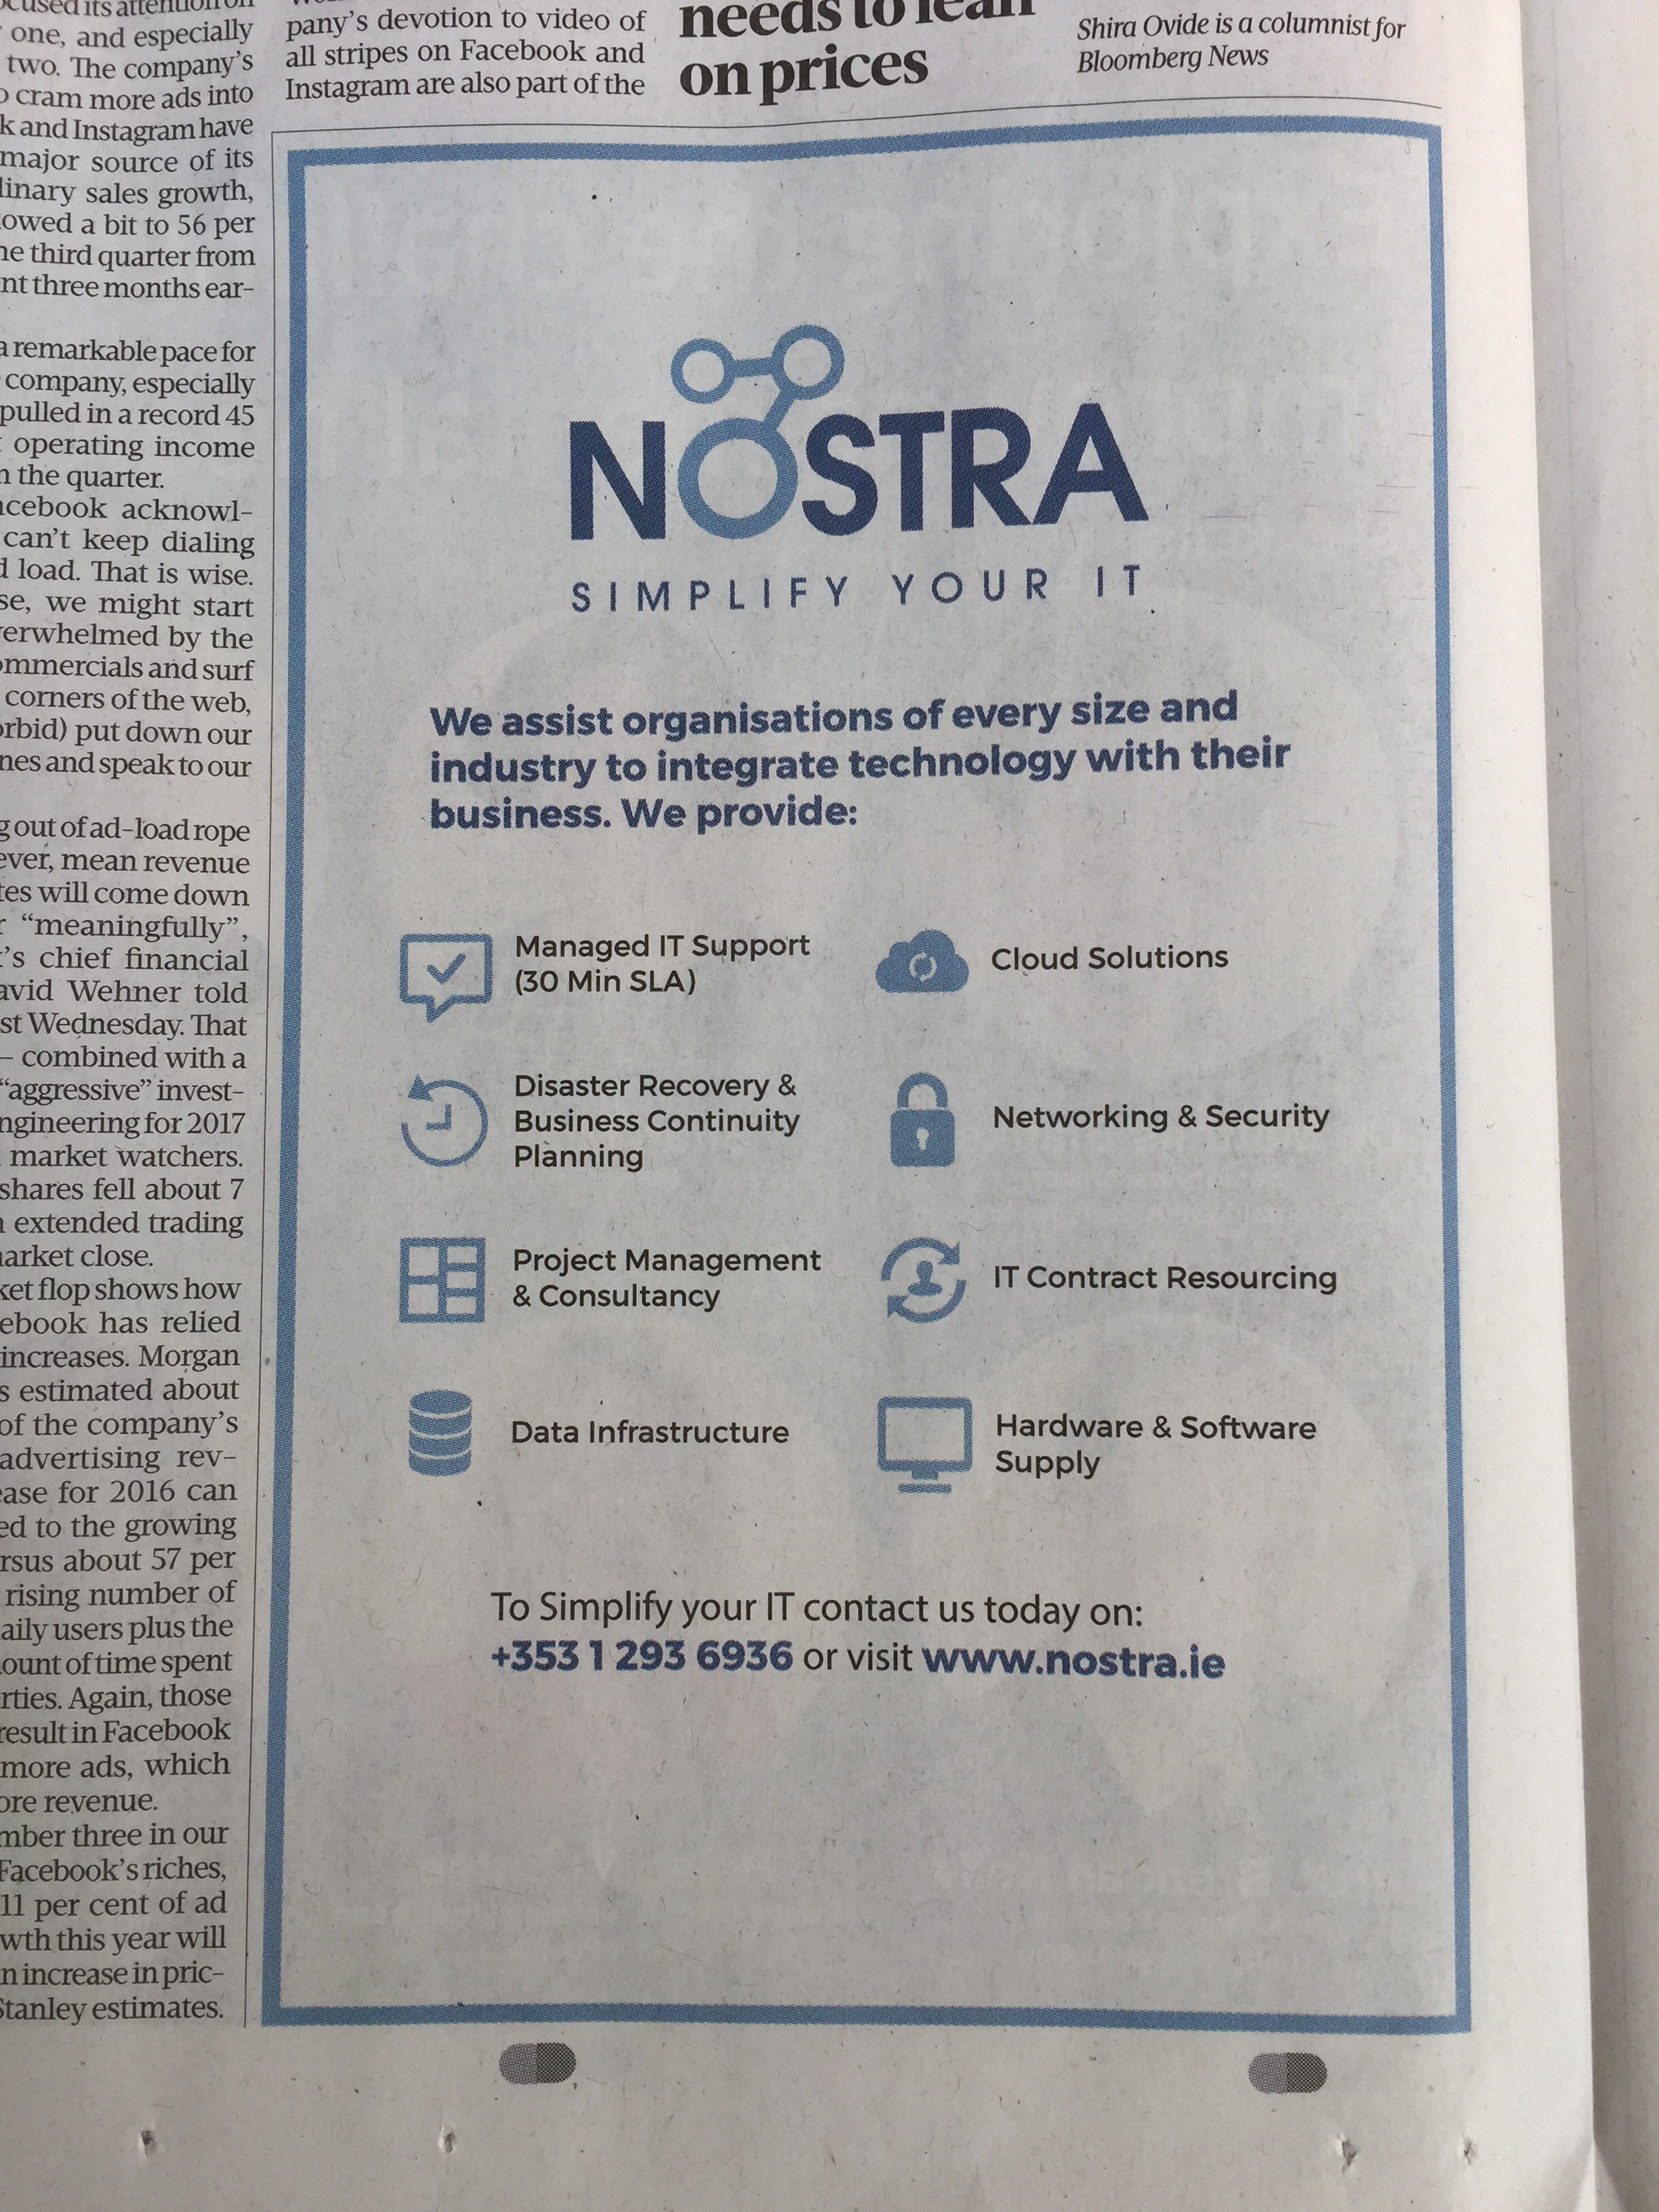 Nostra – simplify your IT